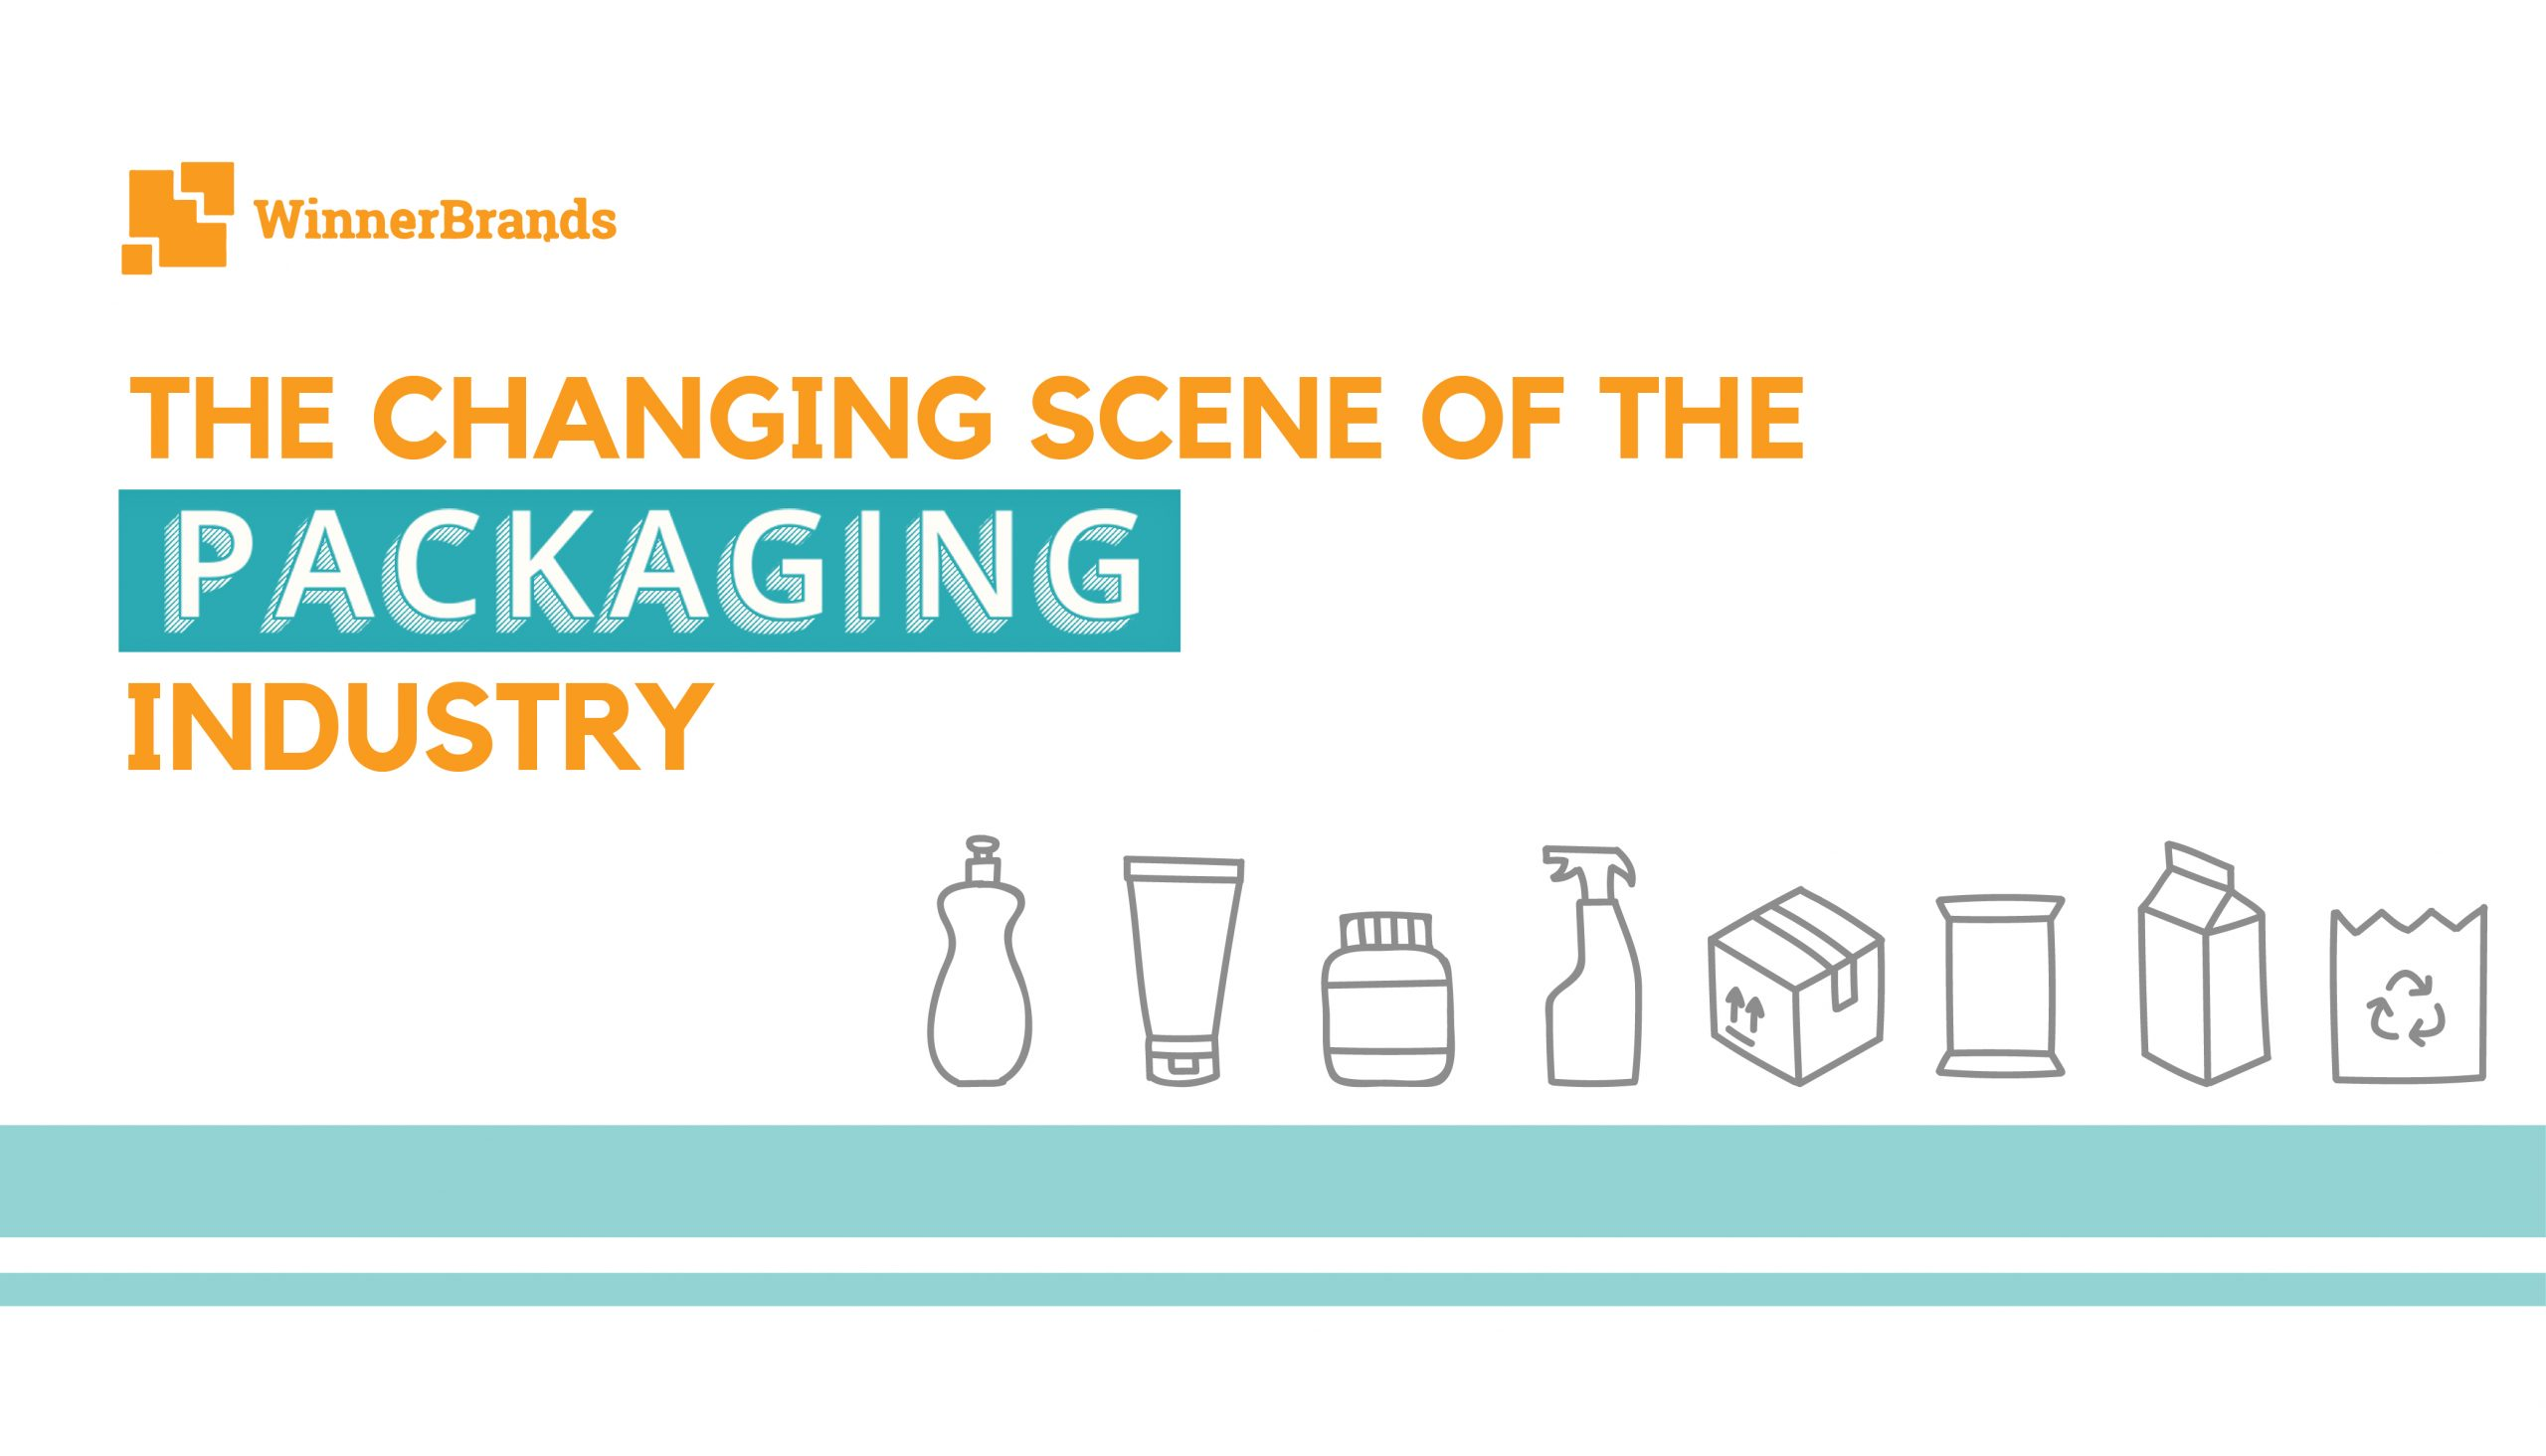 THE CHANGING SCENE OF THE PACKAGING INDUSTRY